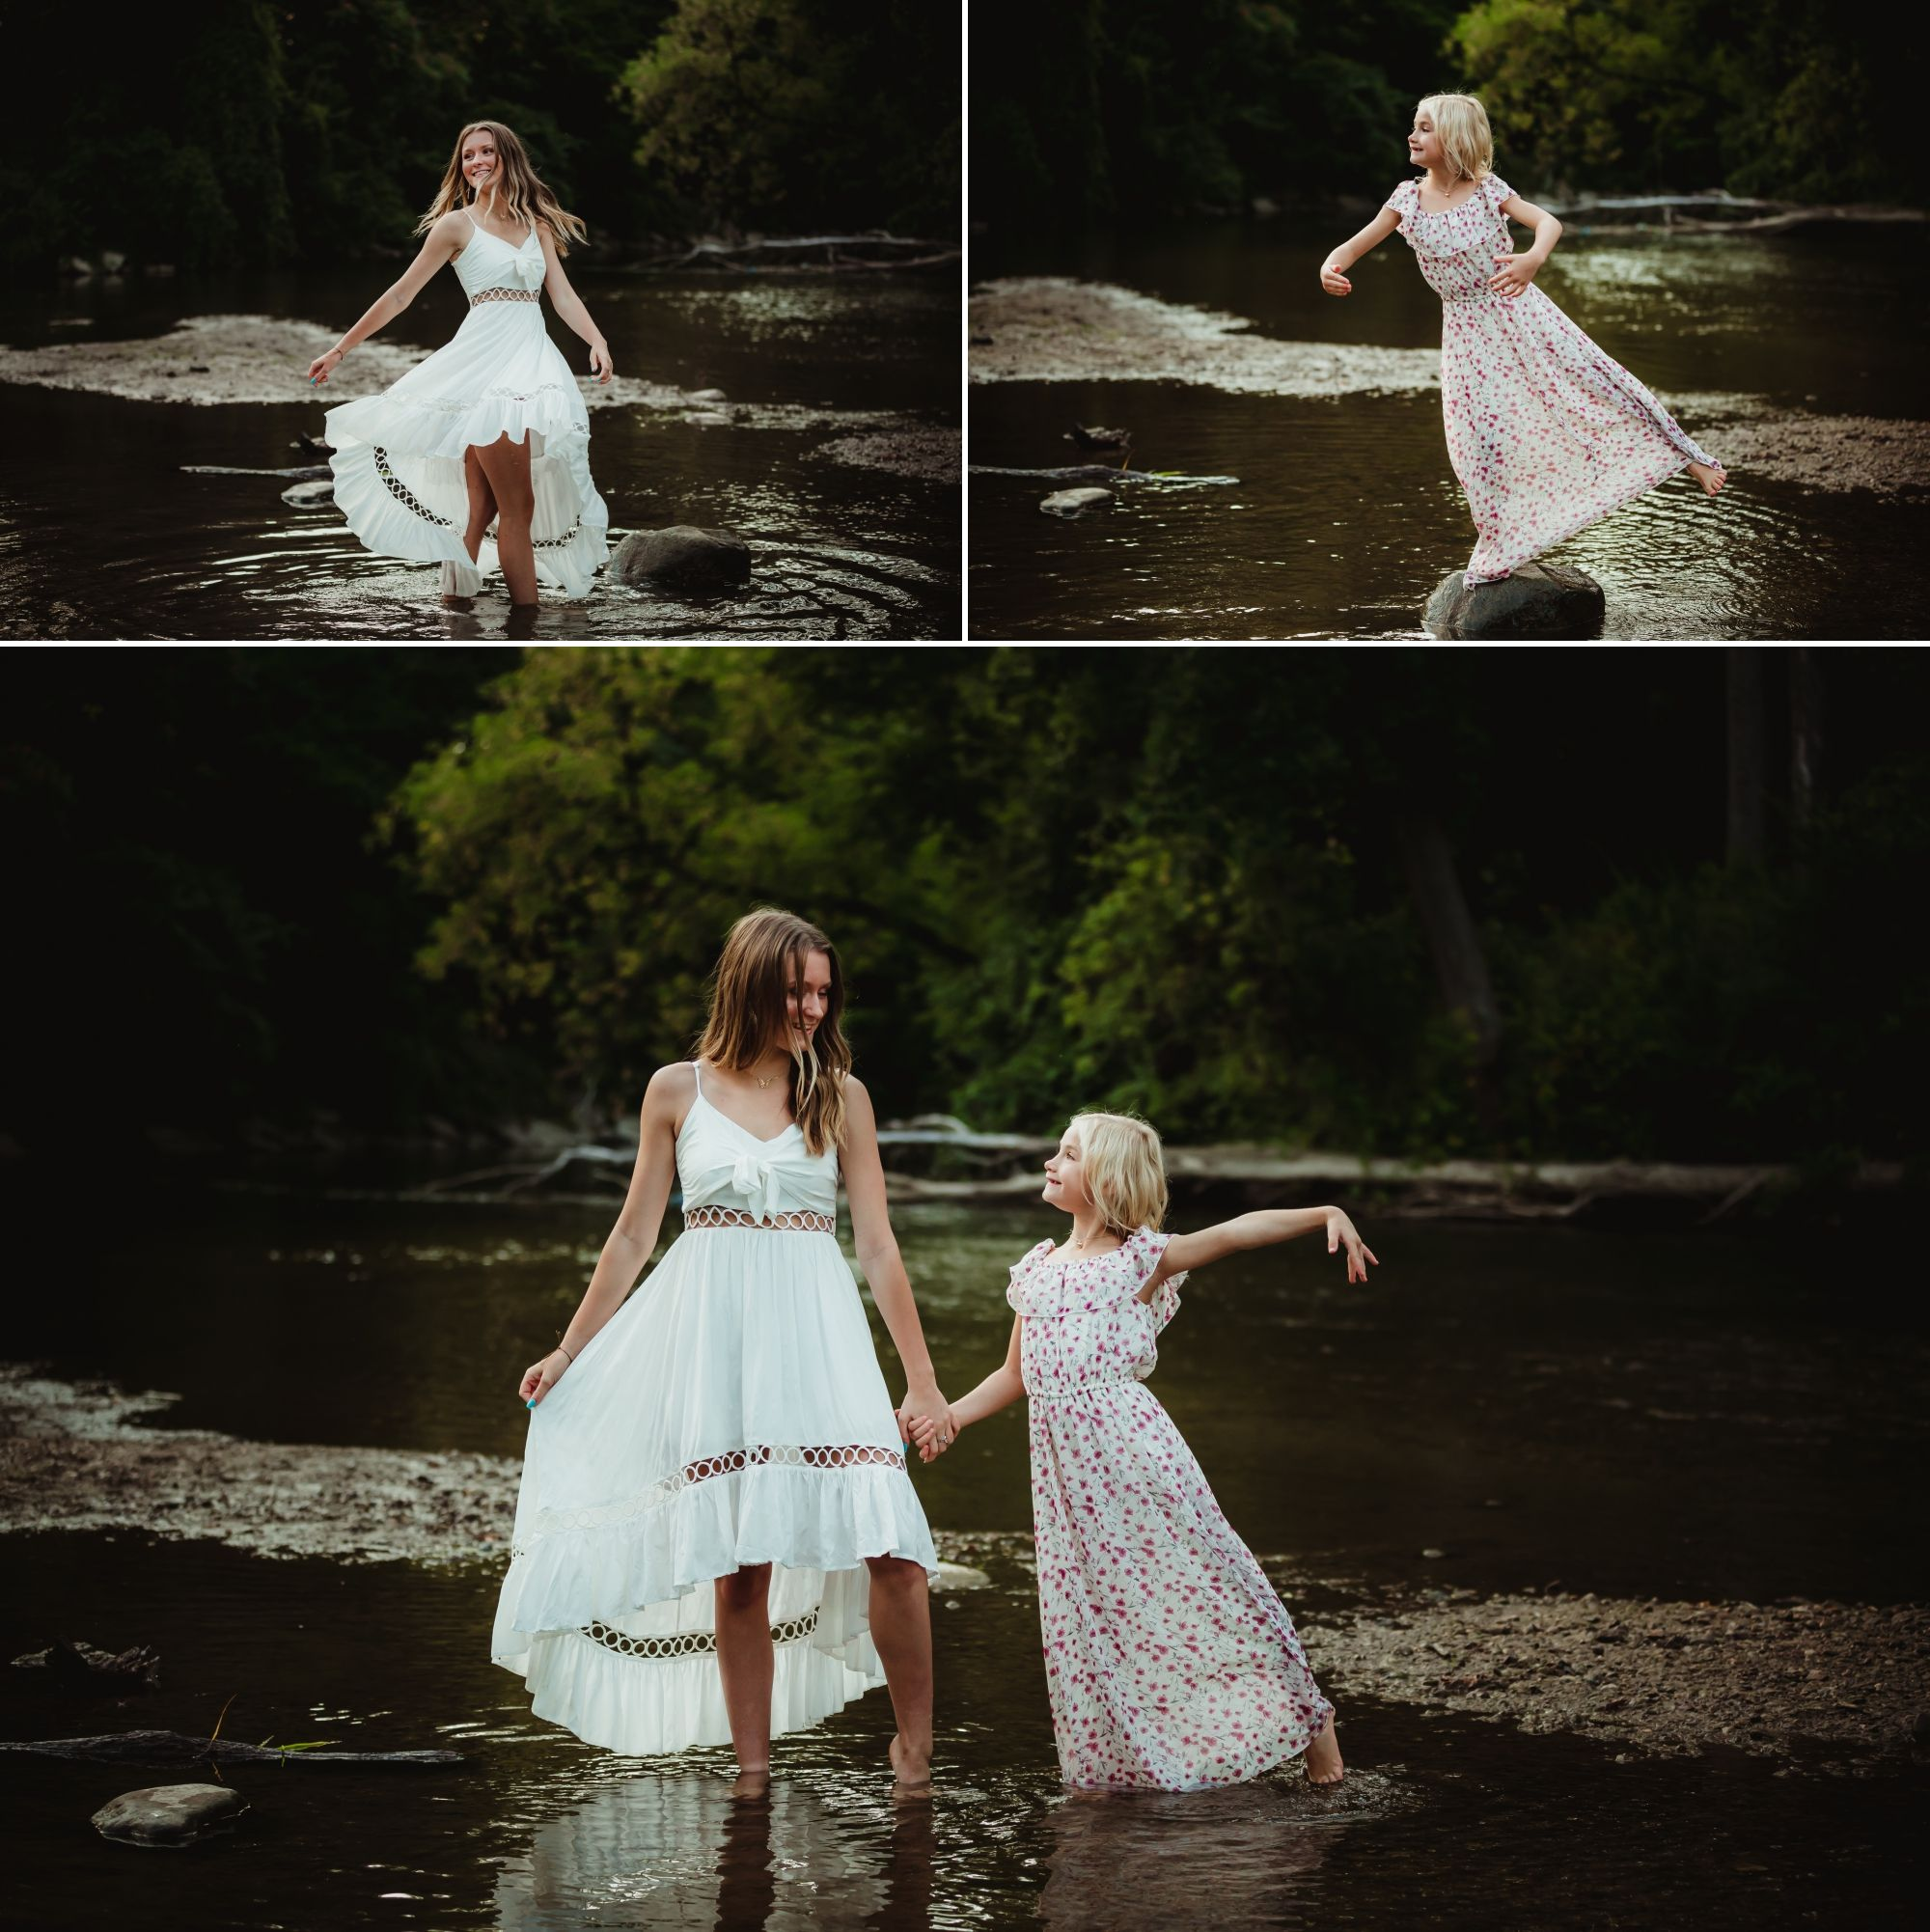 Two girls doing dance poses in a river.